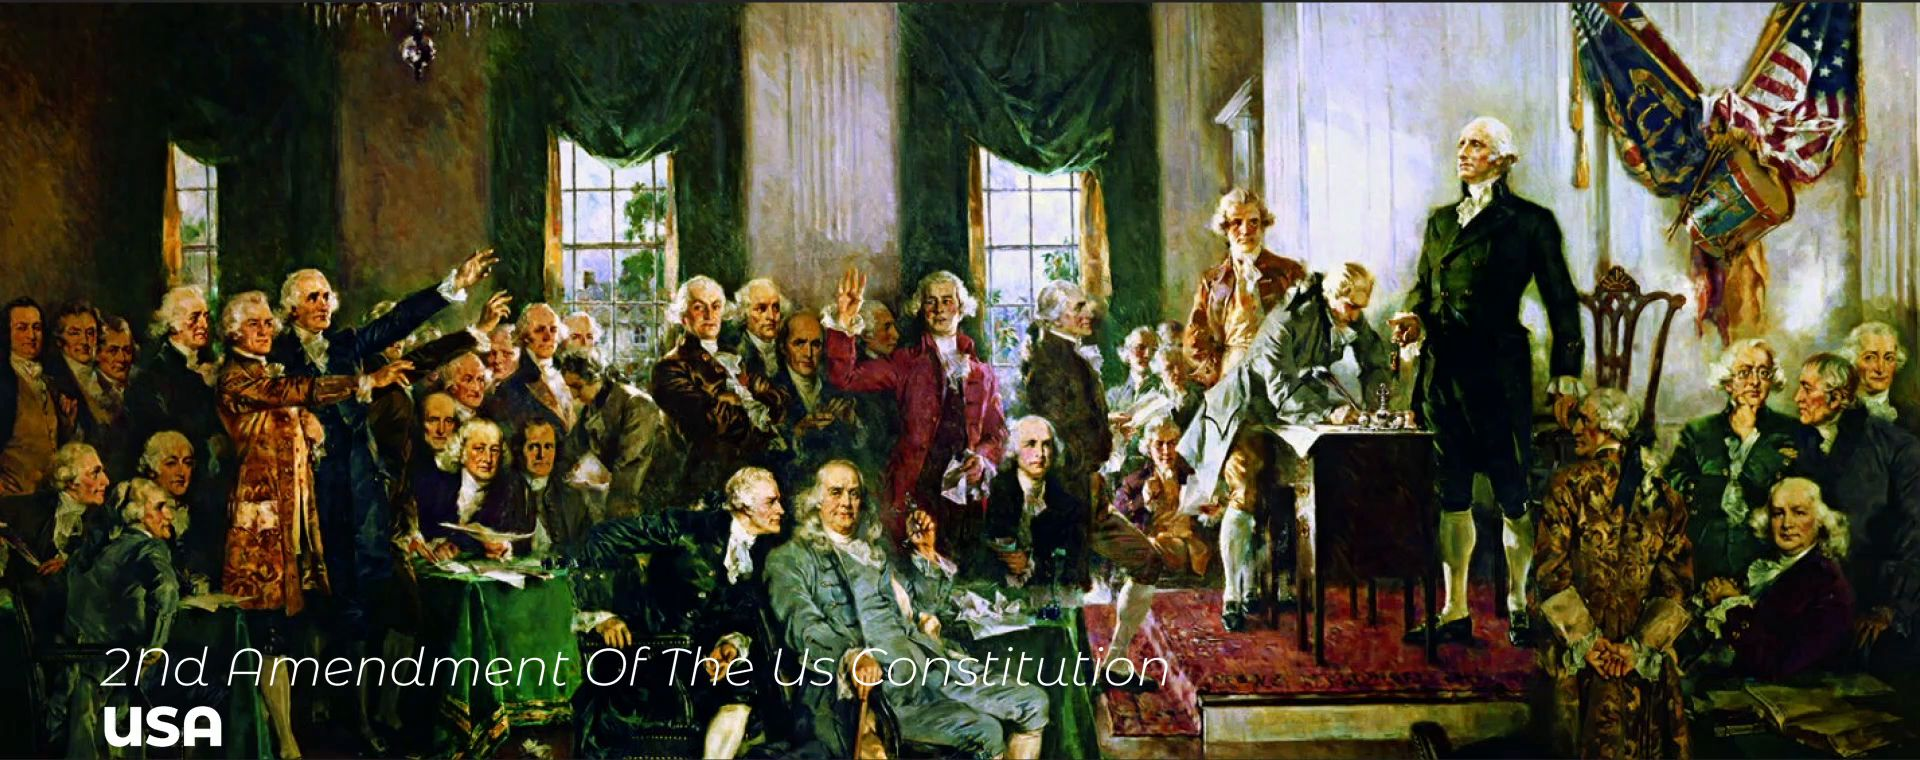 2ND AMENDMENT OF THE US CONSTITUTION